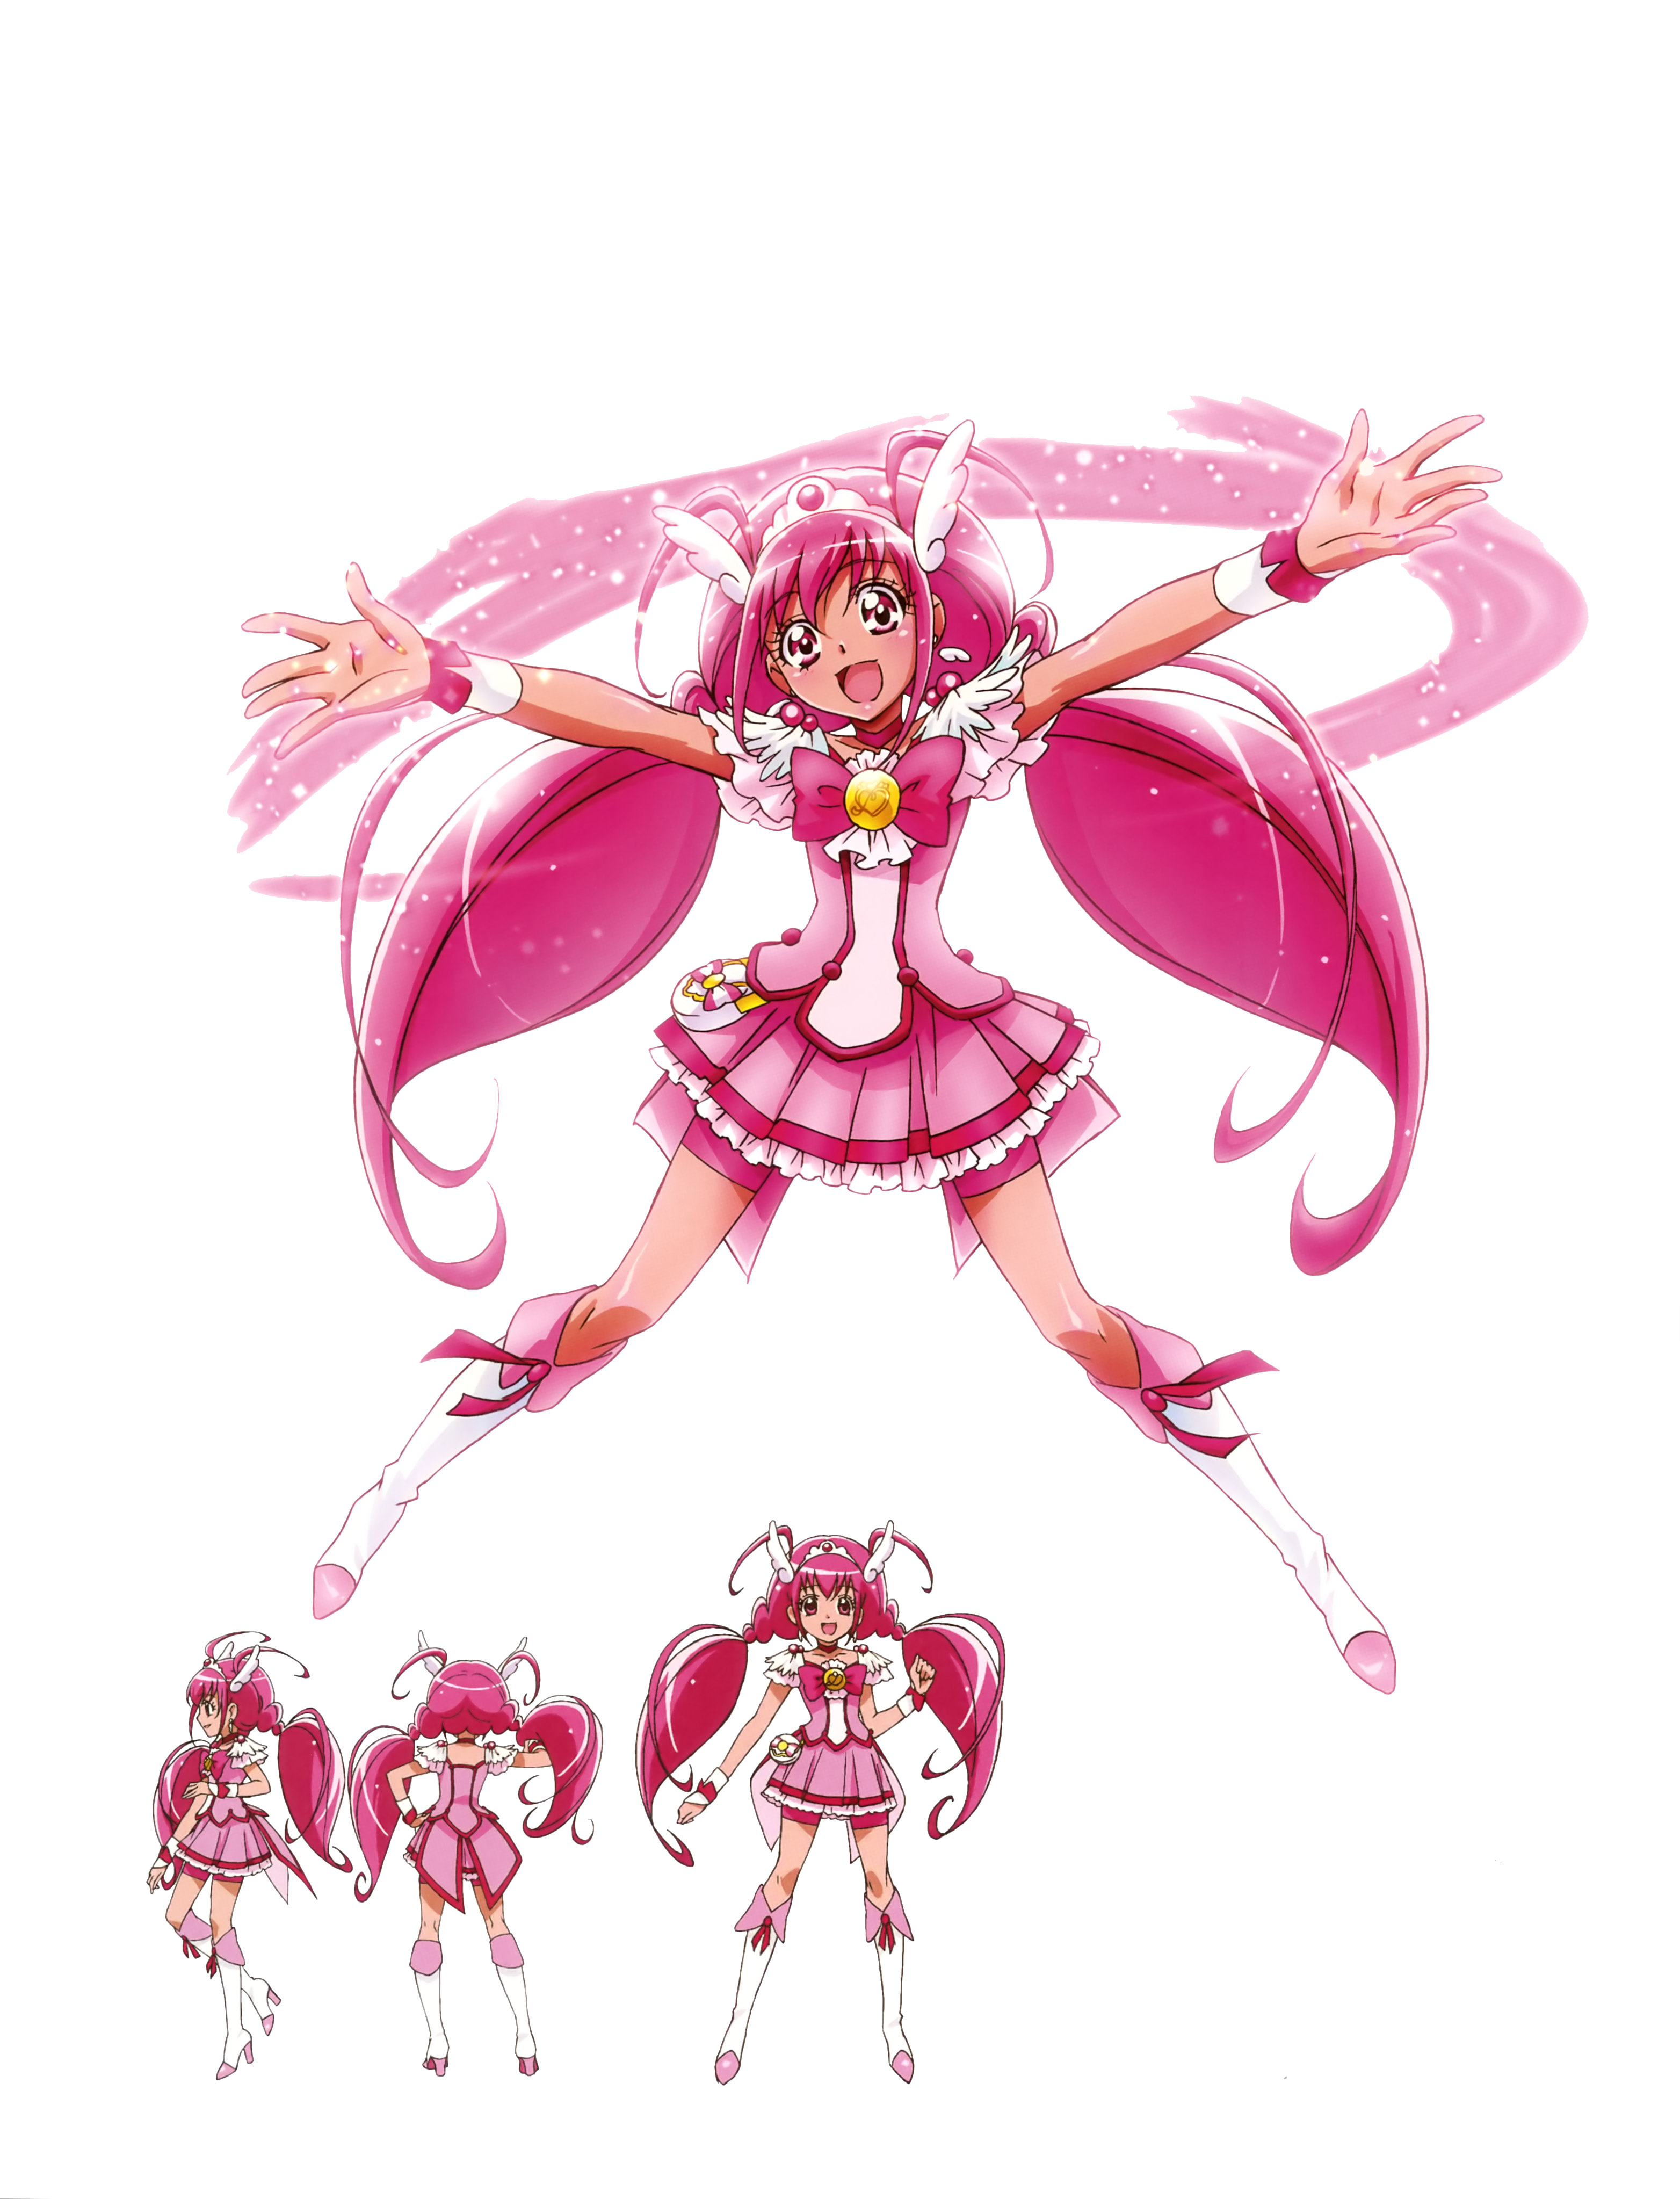 Smile Precure Characters Smile Precure Render By Bloomsama Dgftc